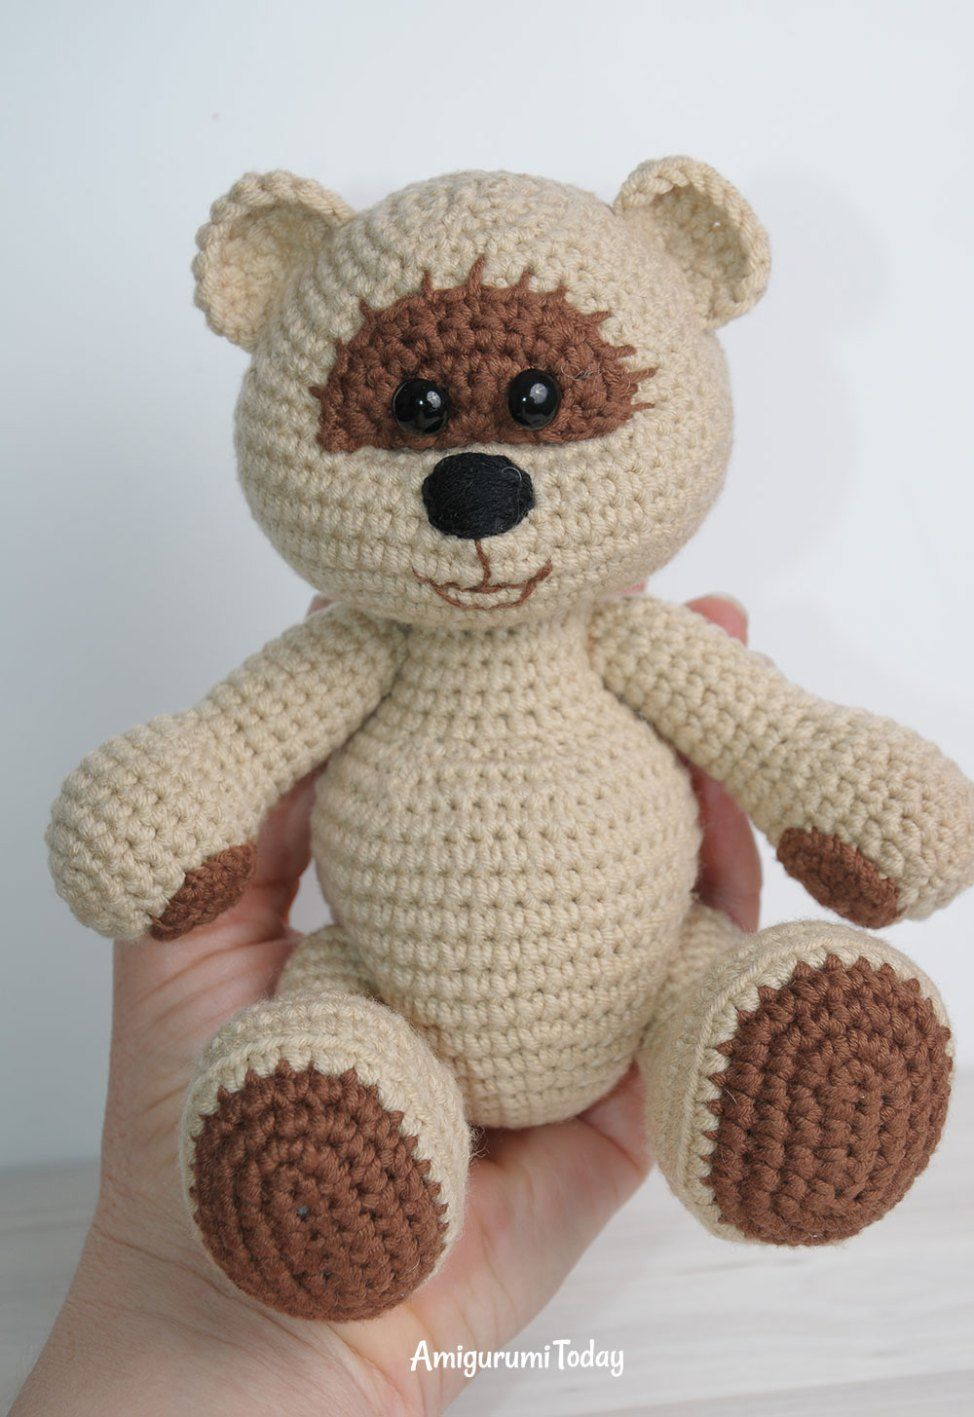 Cuddle Me Bear amigurumi pattern - Amigurumi Today | 1417x974